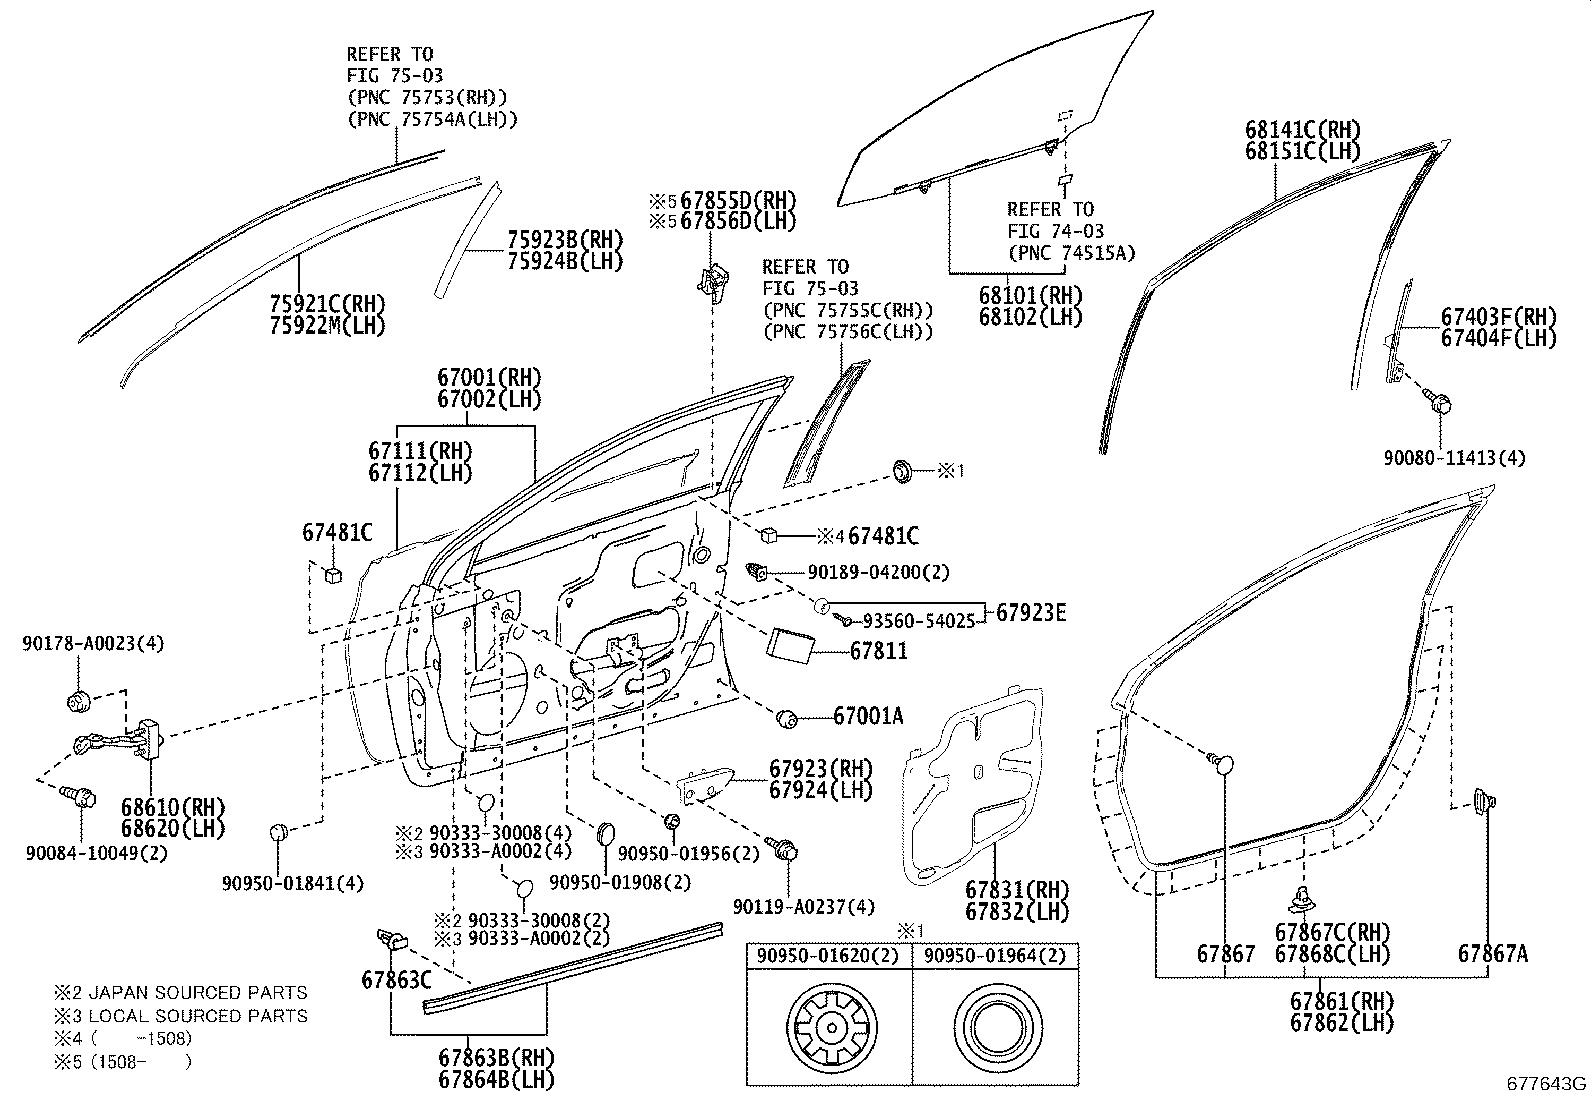 Toyota Avalon Door Check (Front). A mechanism used to